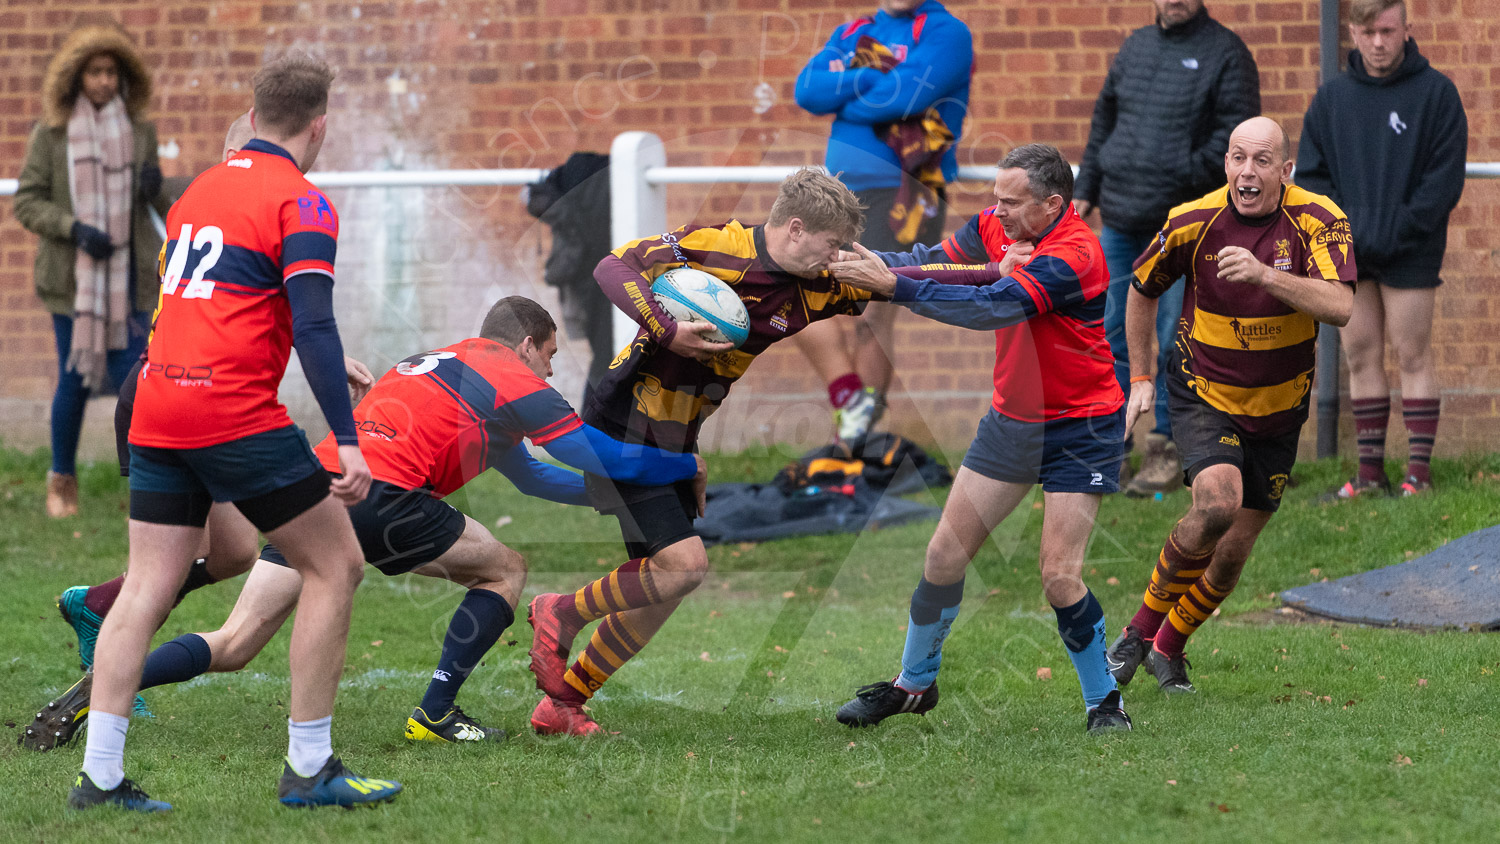 20181027 Amp Extras vs St Neots 2nd XV #2421